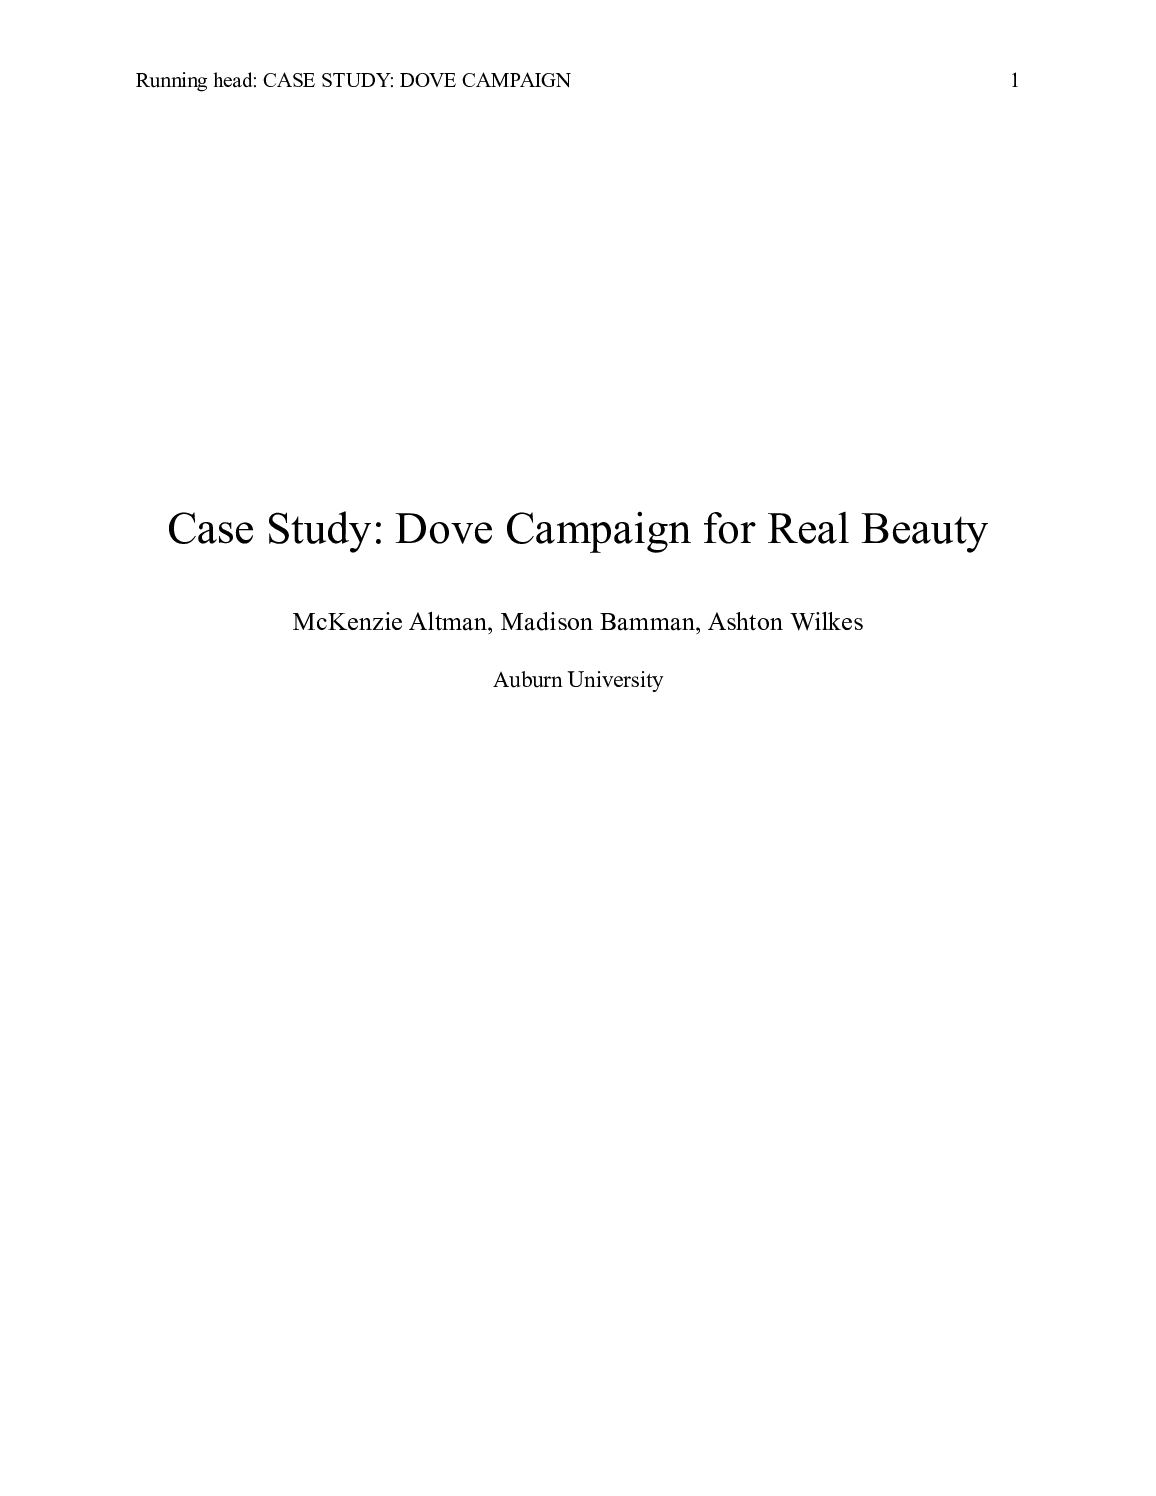 dove real beauty campaign case study